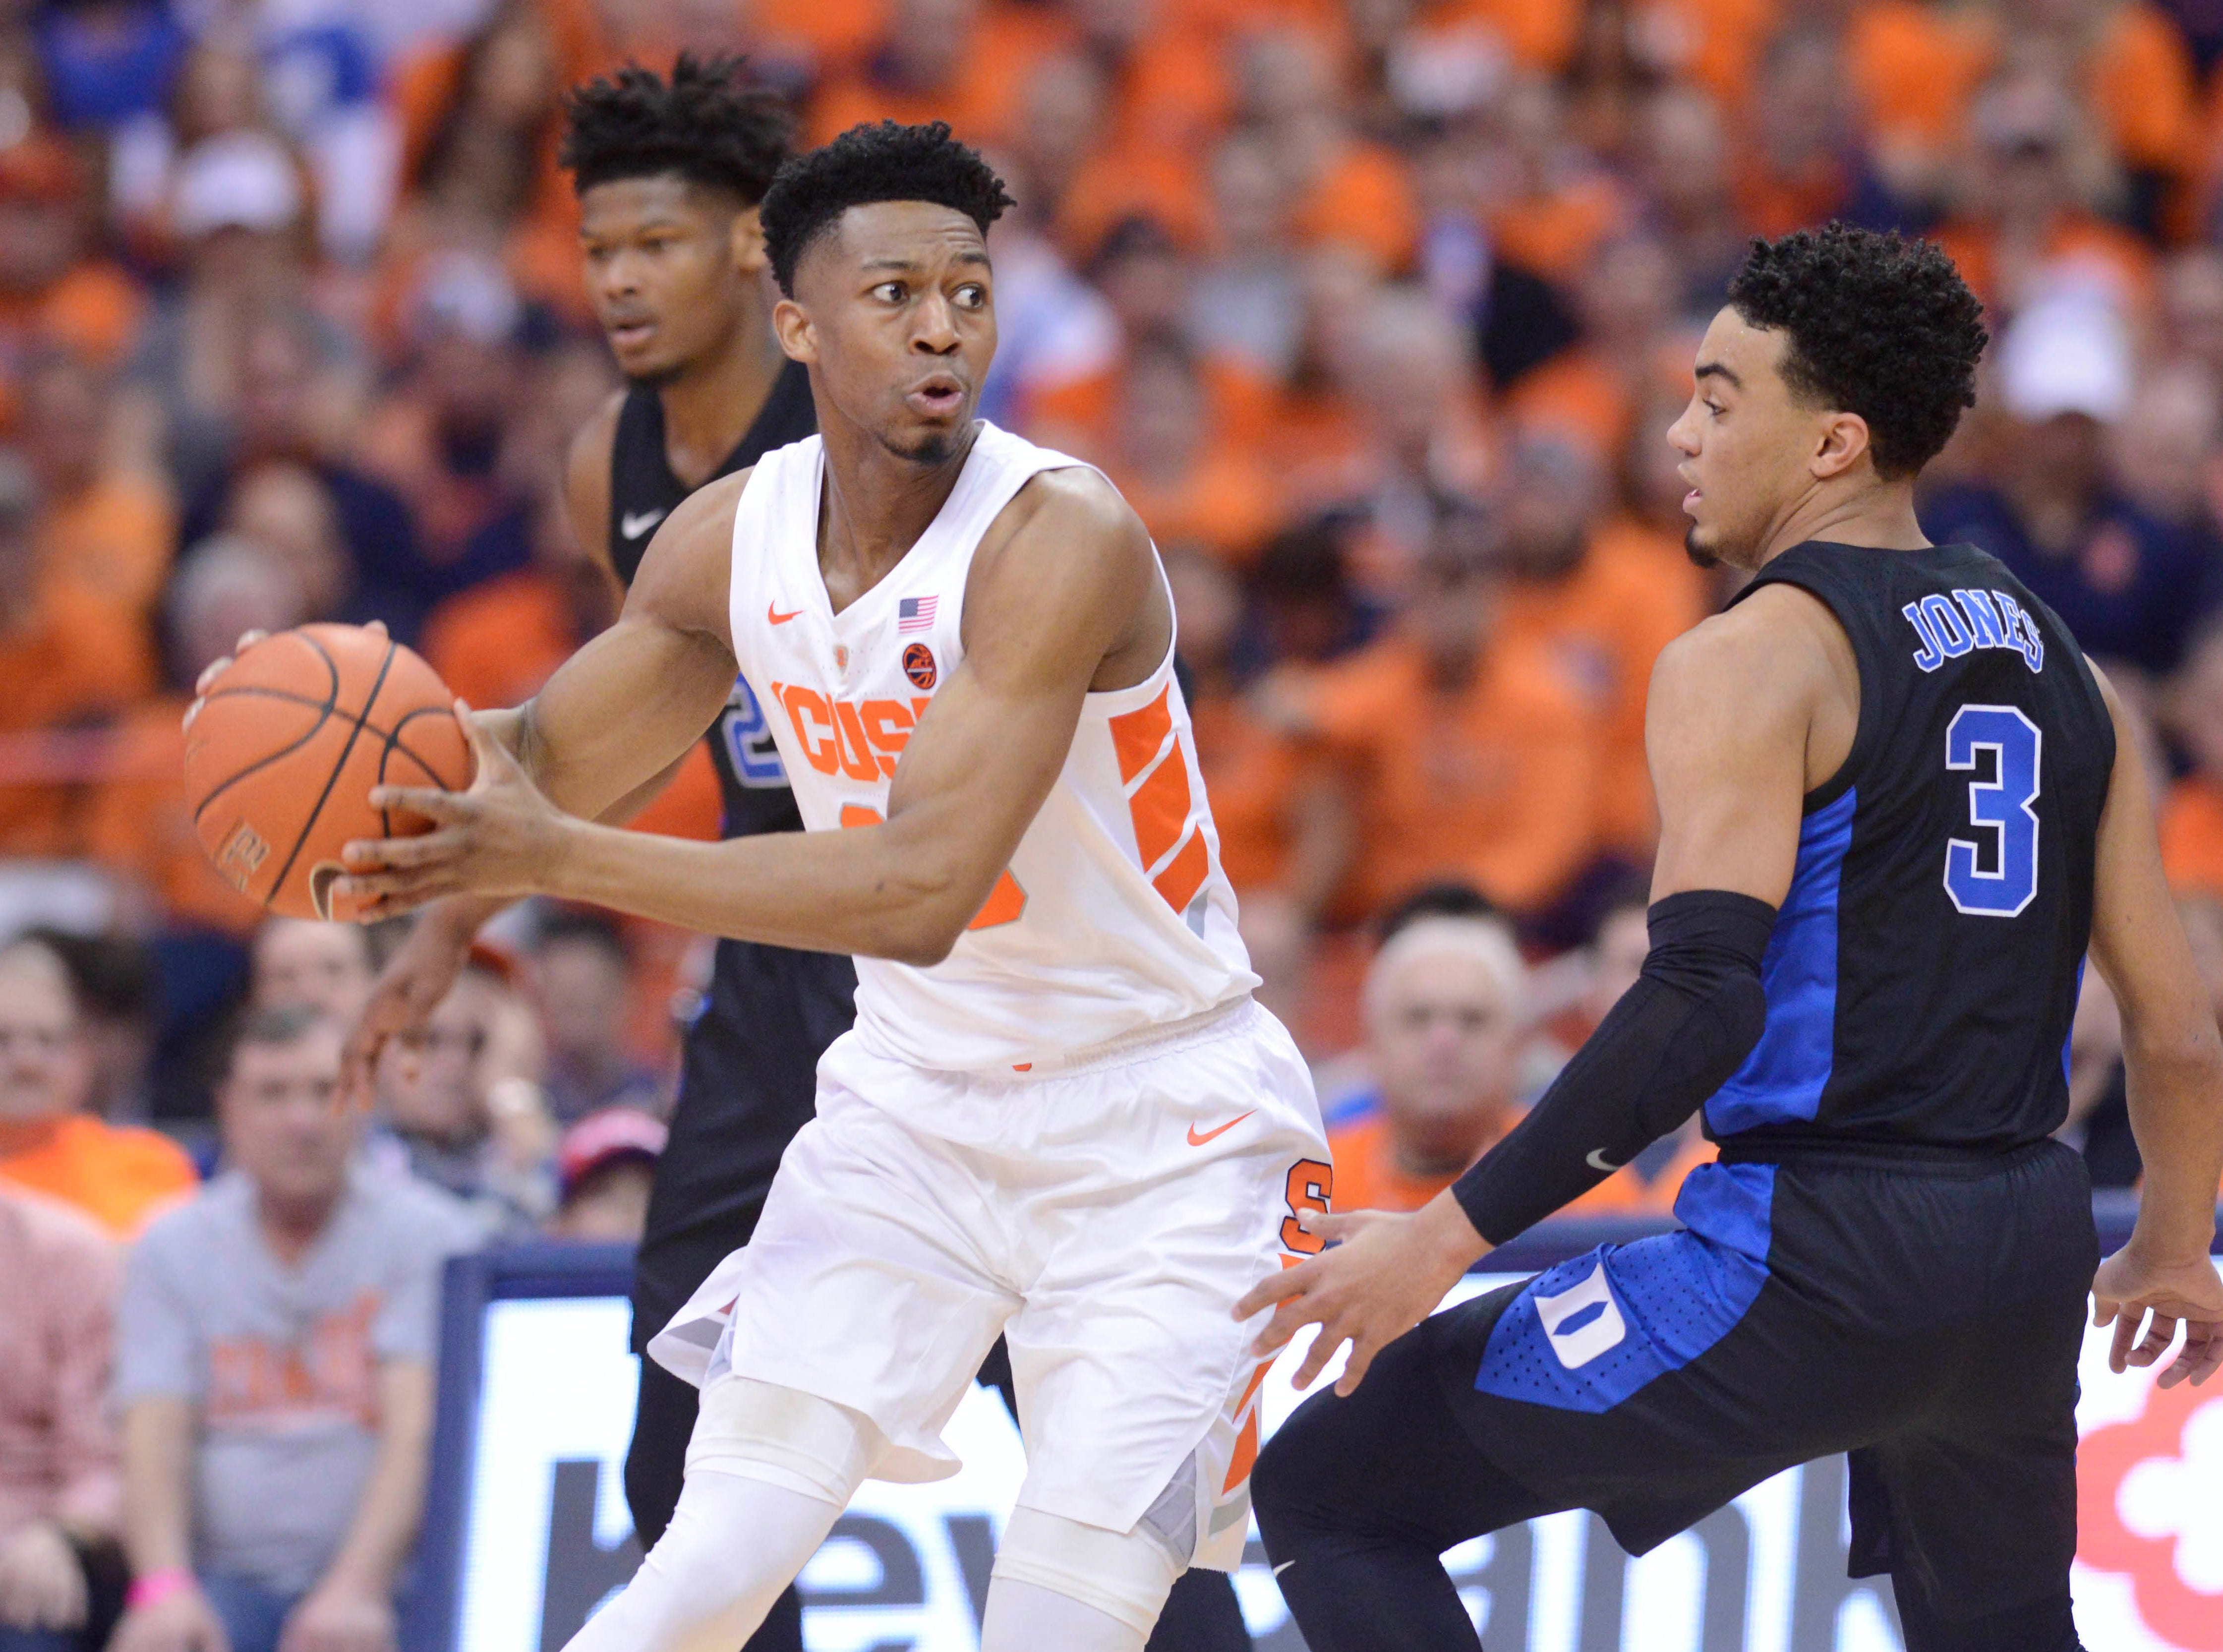 Feb 23, 2019; Syracuse, NY, USA; Syracuse Orange guard Tyus Battle looks to make a pass as Duke Blue Devils guard Tre Jones (3) defends in the first half at the Carrier Dome. Mandatory Credit: Mark Konezny-USA TODAY Sports